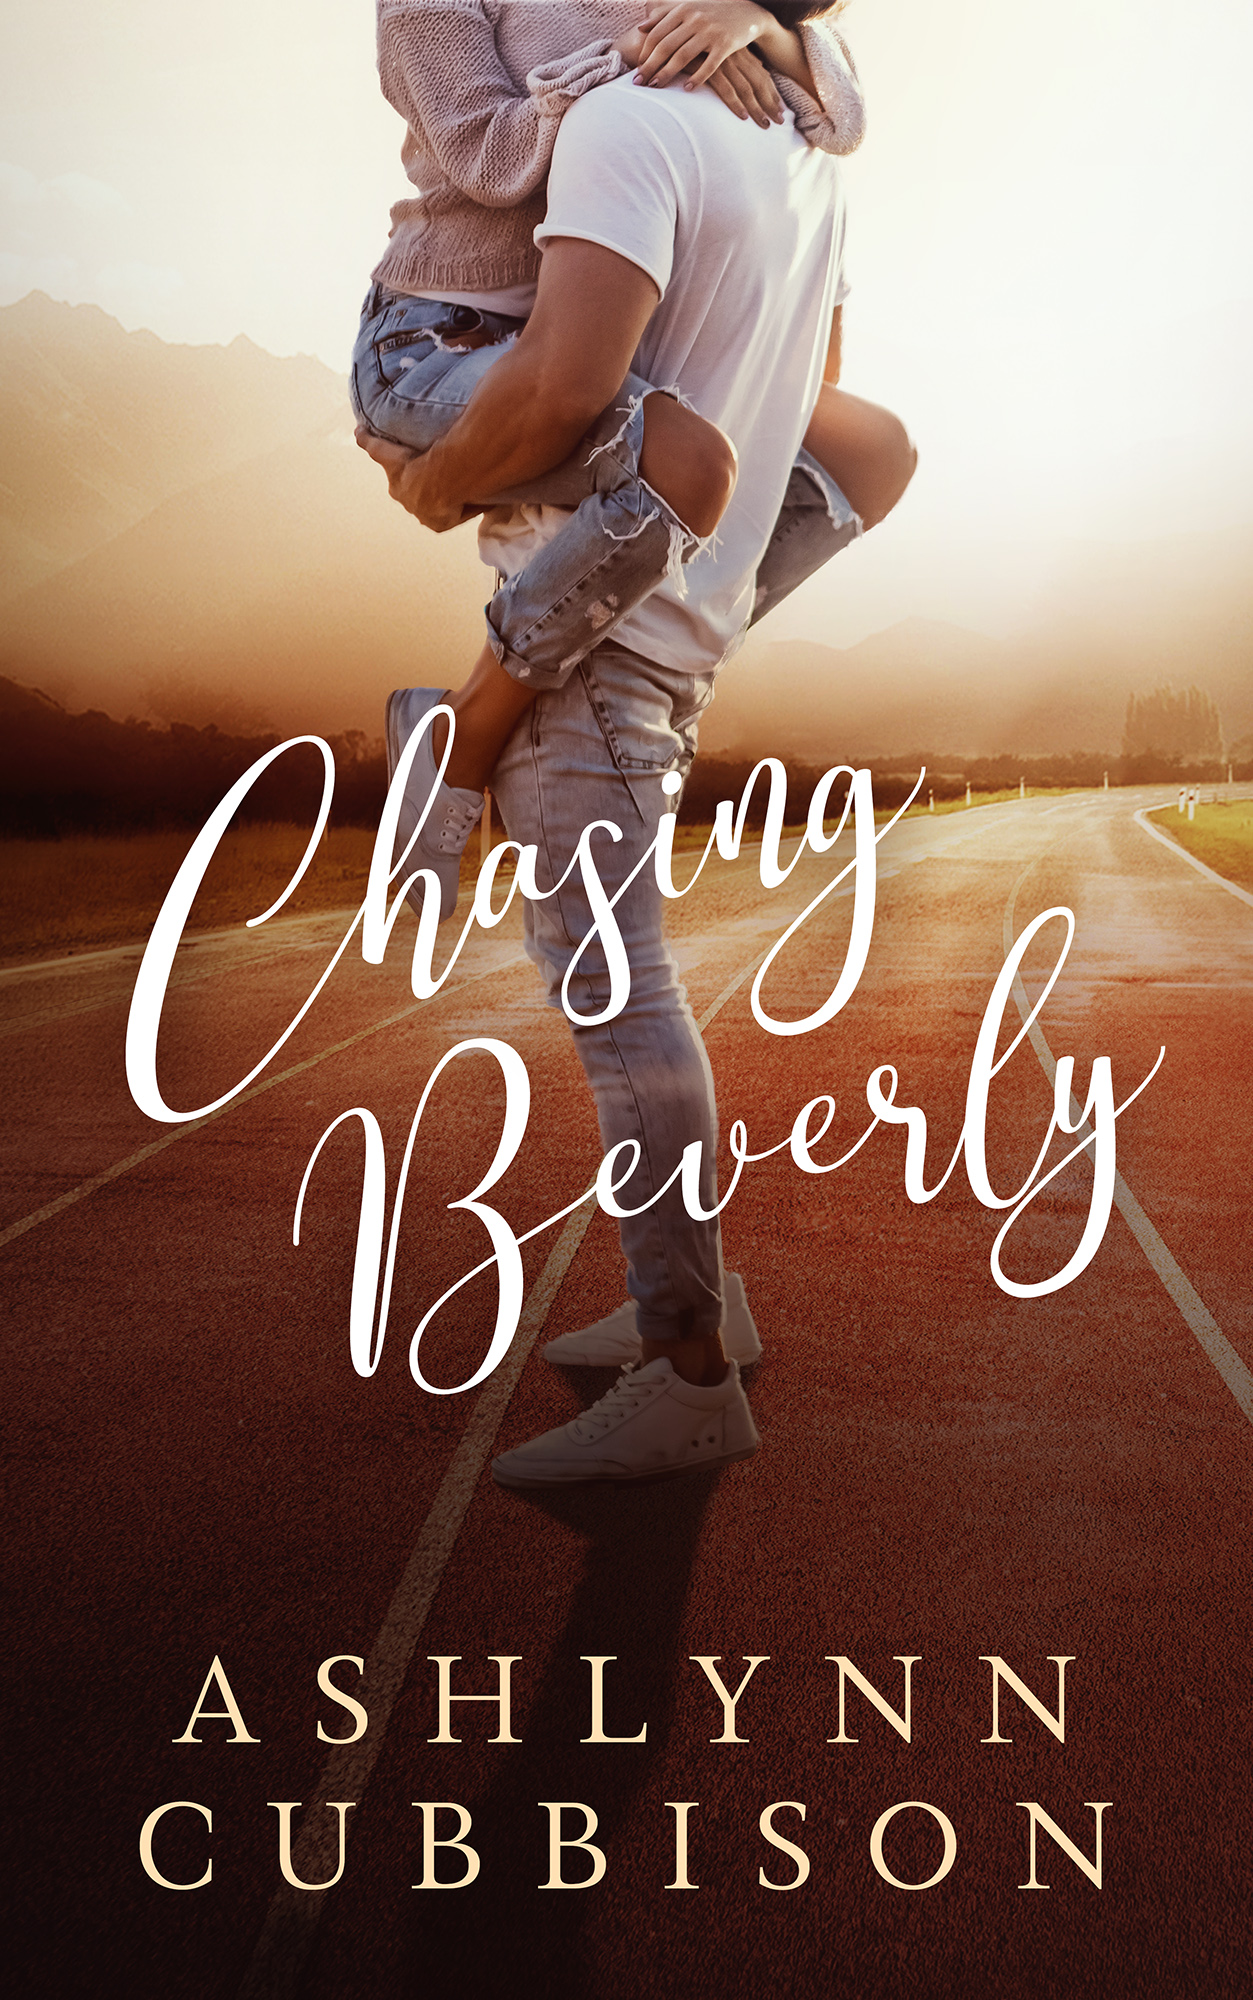 The cover of Chasing Beverly, by Ashlynn Cubbison